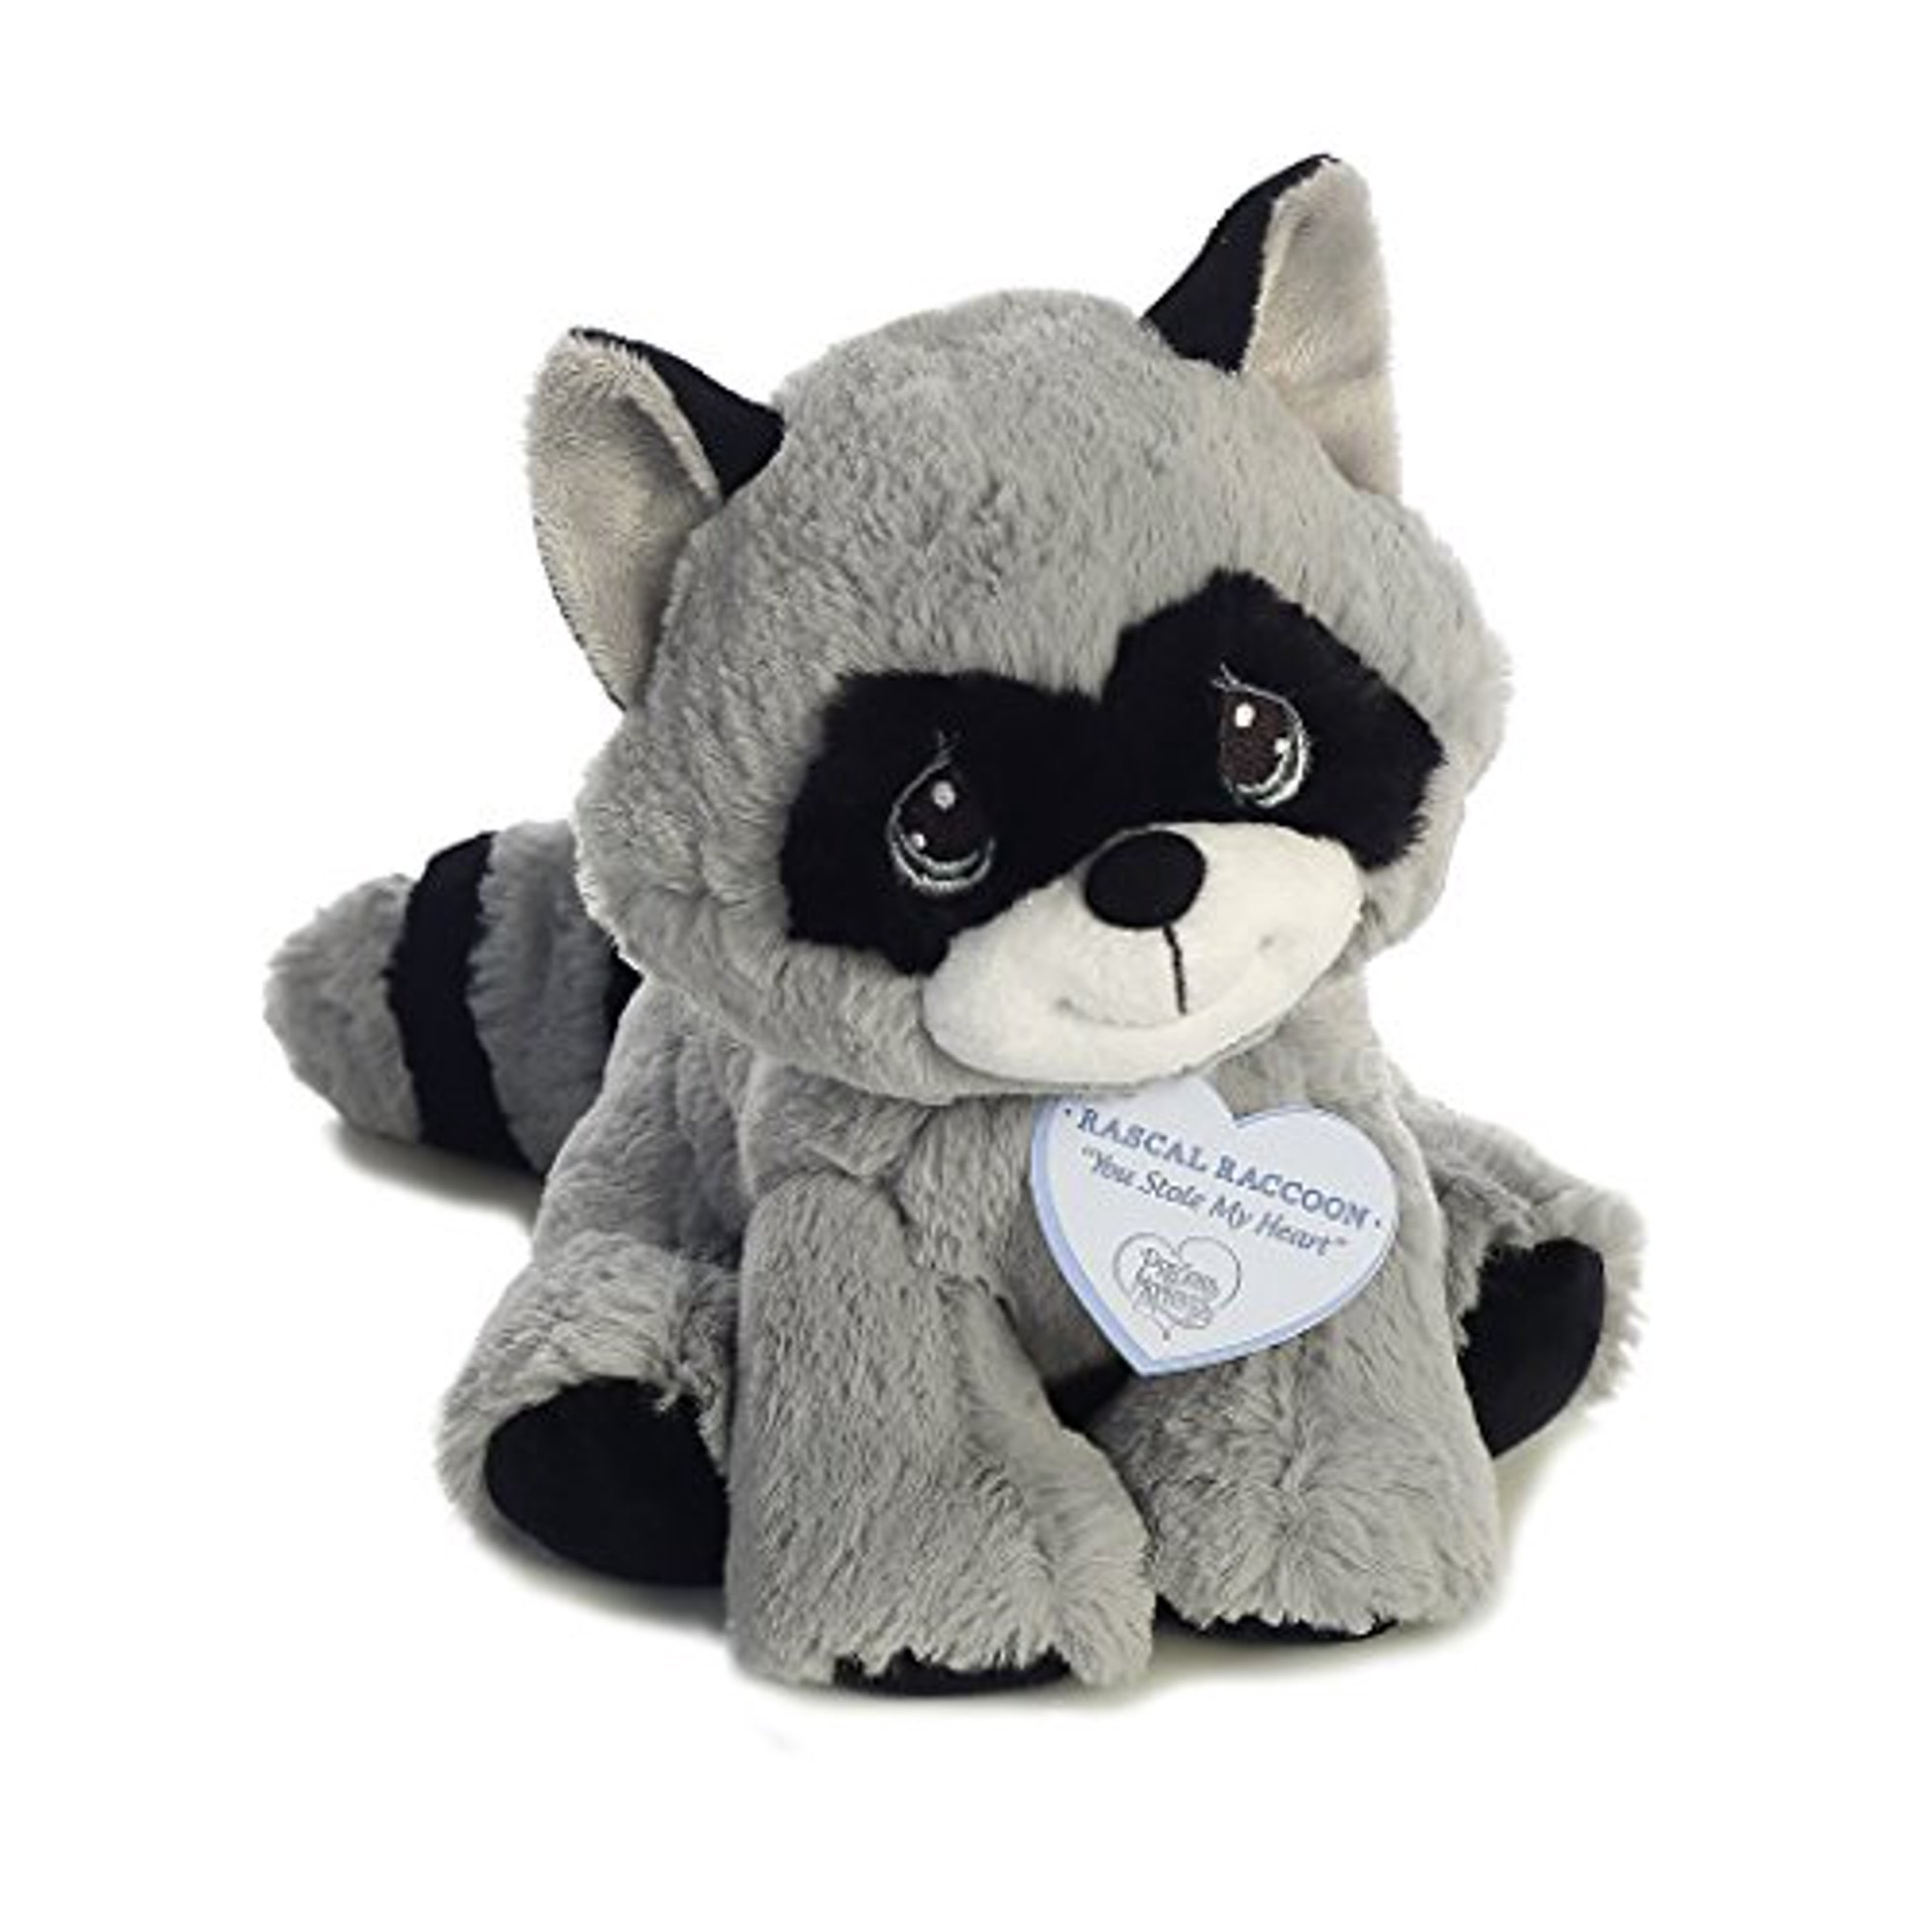 b0506ad55d79 Rascal Raccoon 8 inch - Baby Stuffed Animal by Precious Moments (15705) |  Walmart Canada